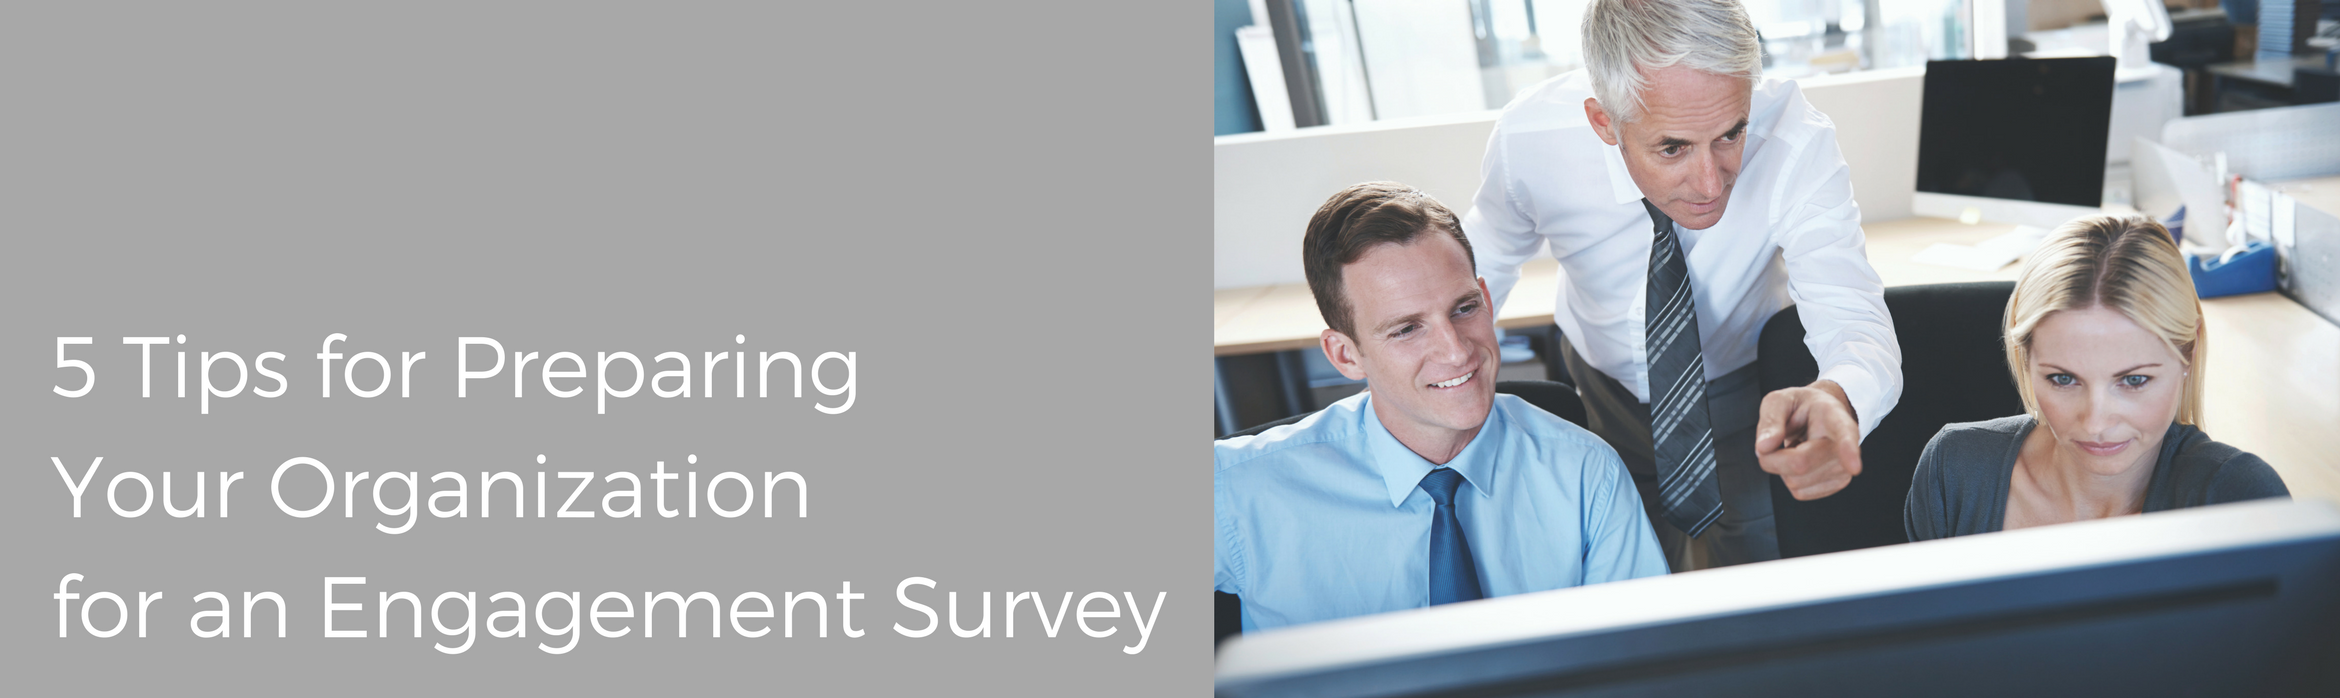 5 Tips for Preparing your Organization for an Engagement Survey